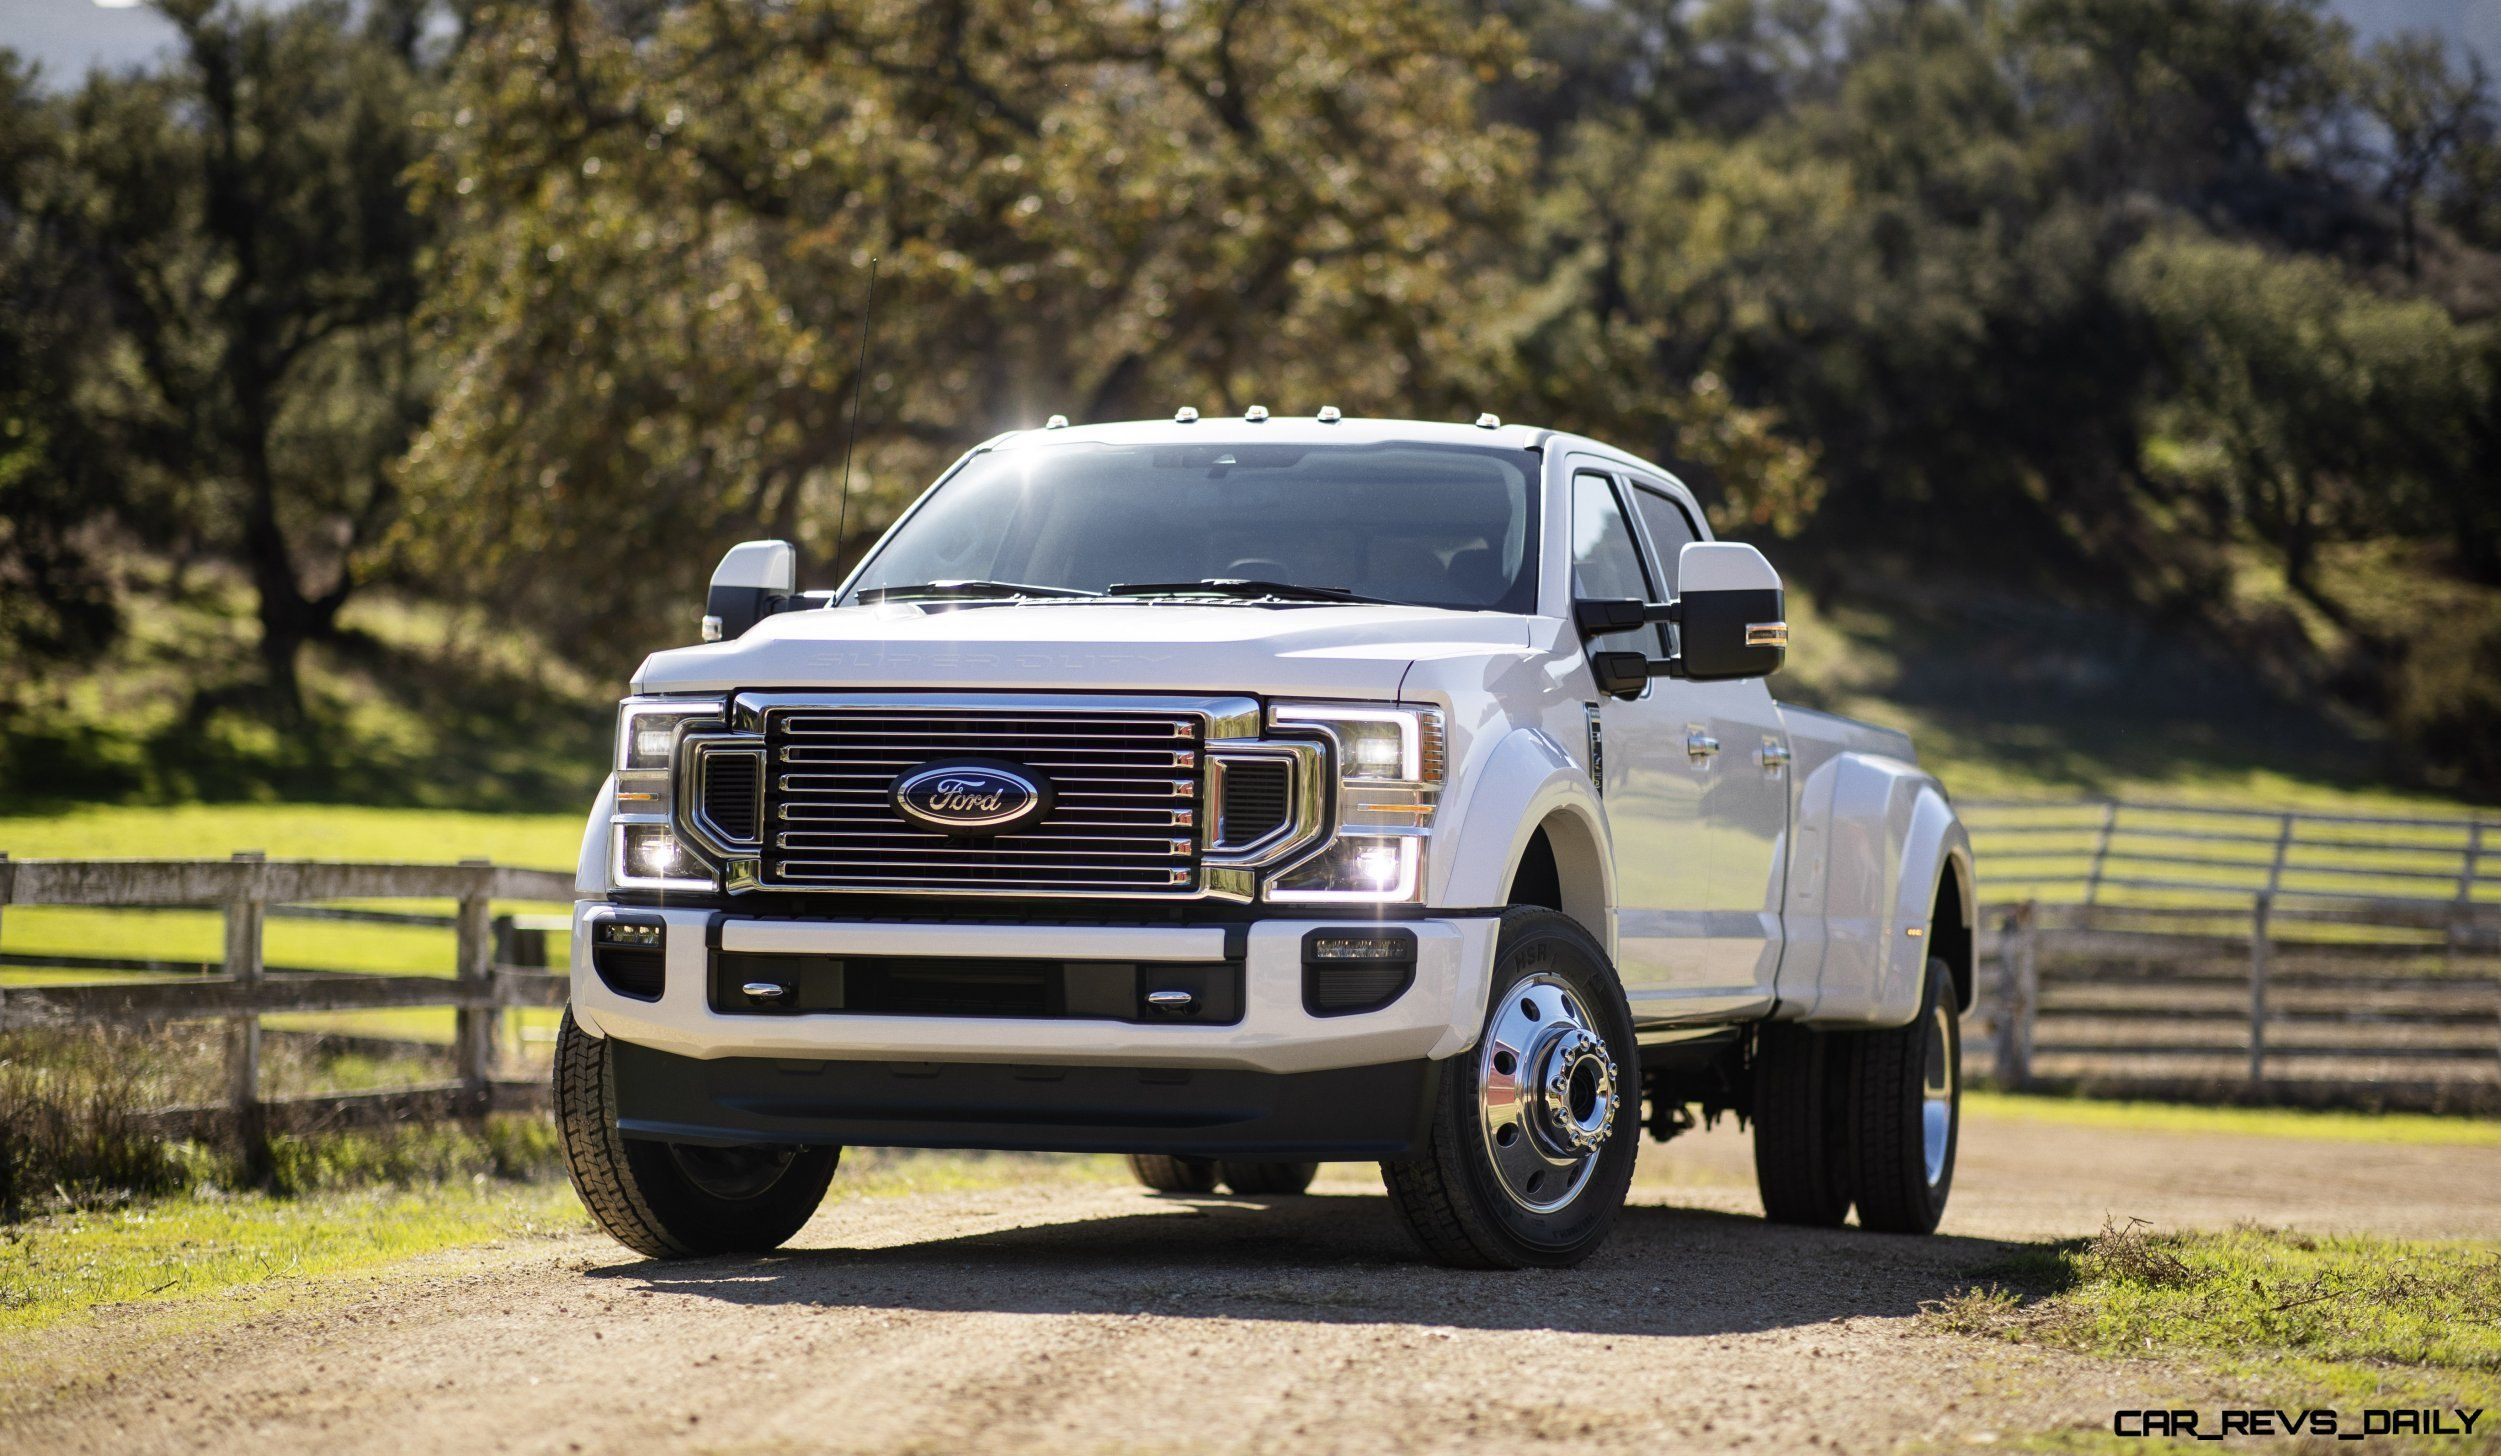 Car Revs Daily Com Ford Cranks Up Horsepower Wars With 2020 Super Duty Debuts New 7 3 Liter V8 Hd Pickup Trucks Pickup Trucks Ford F Series Ford Diesel